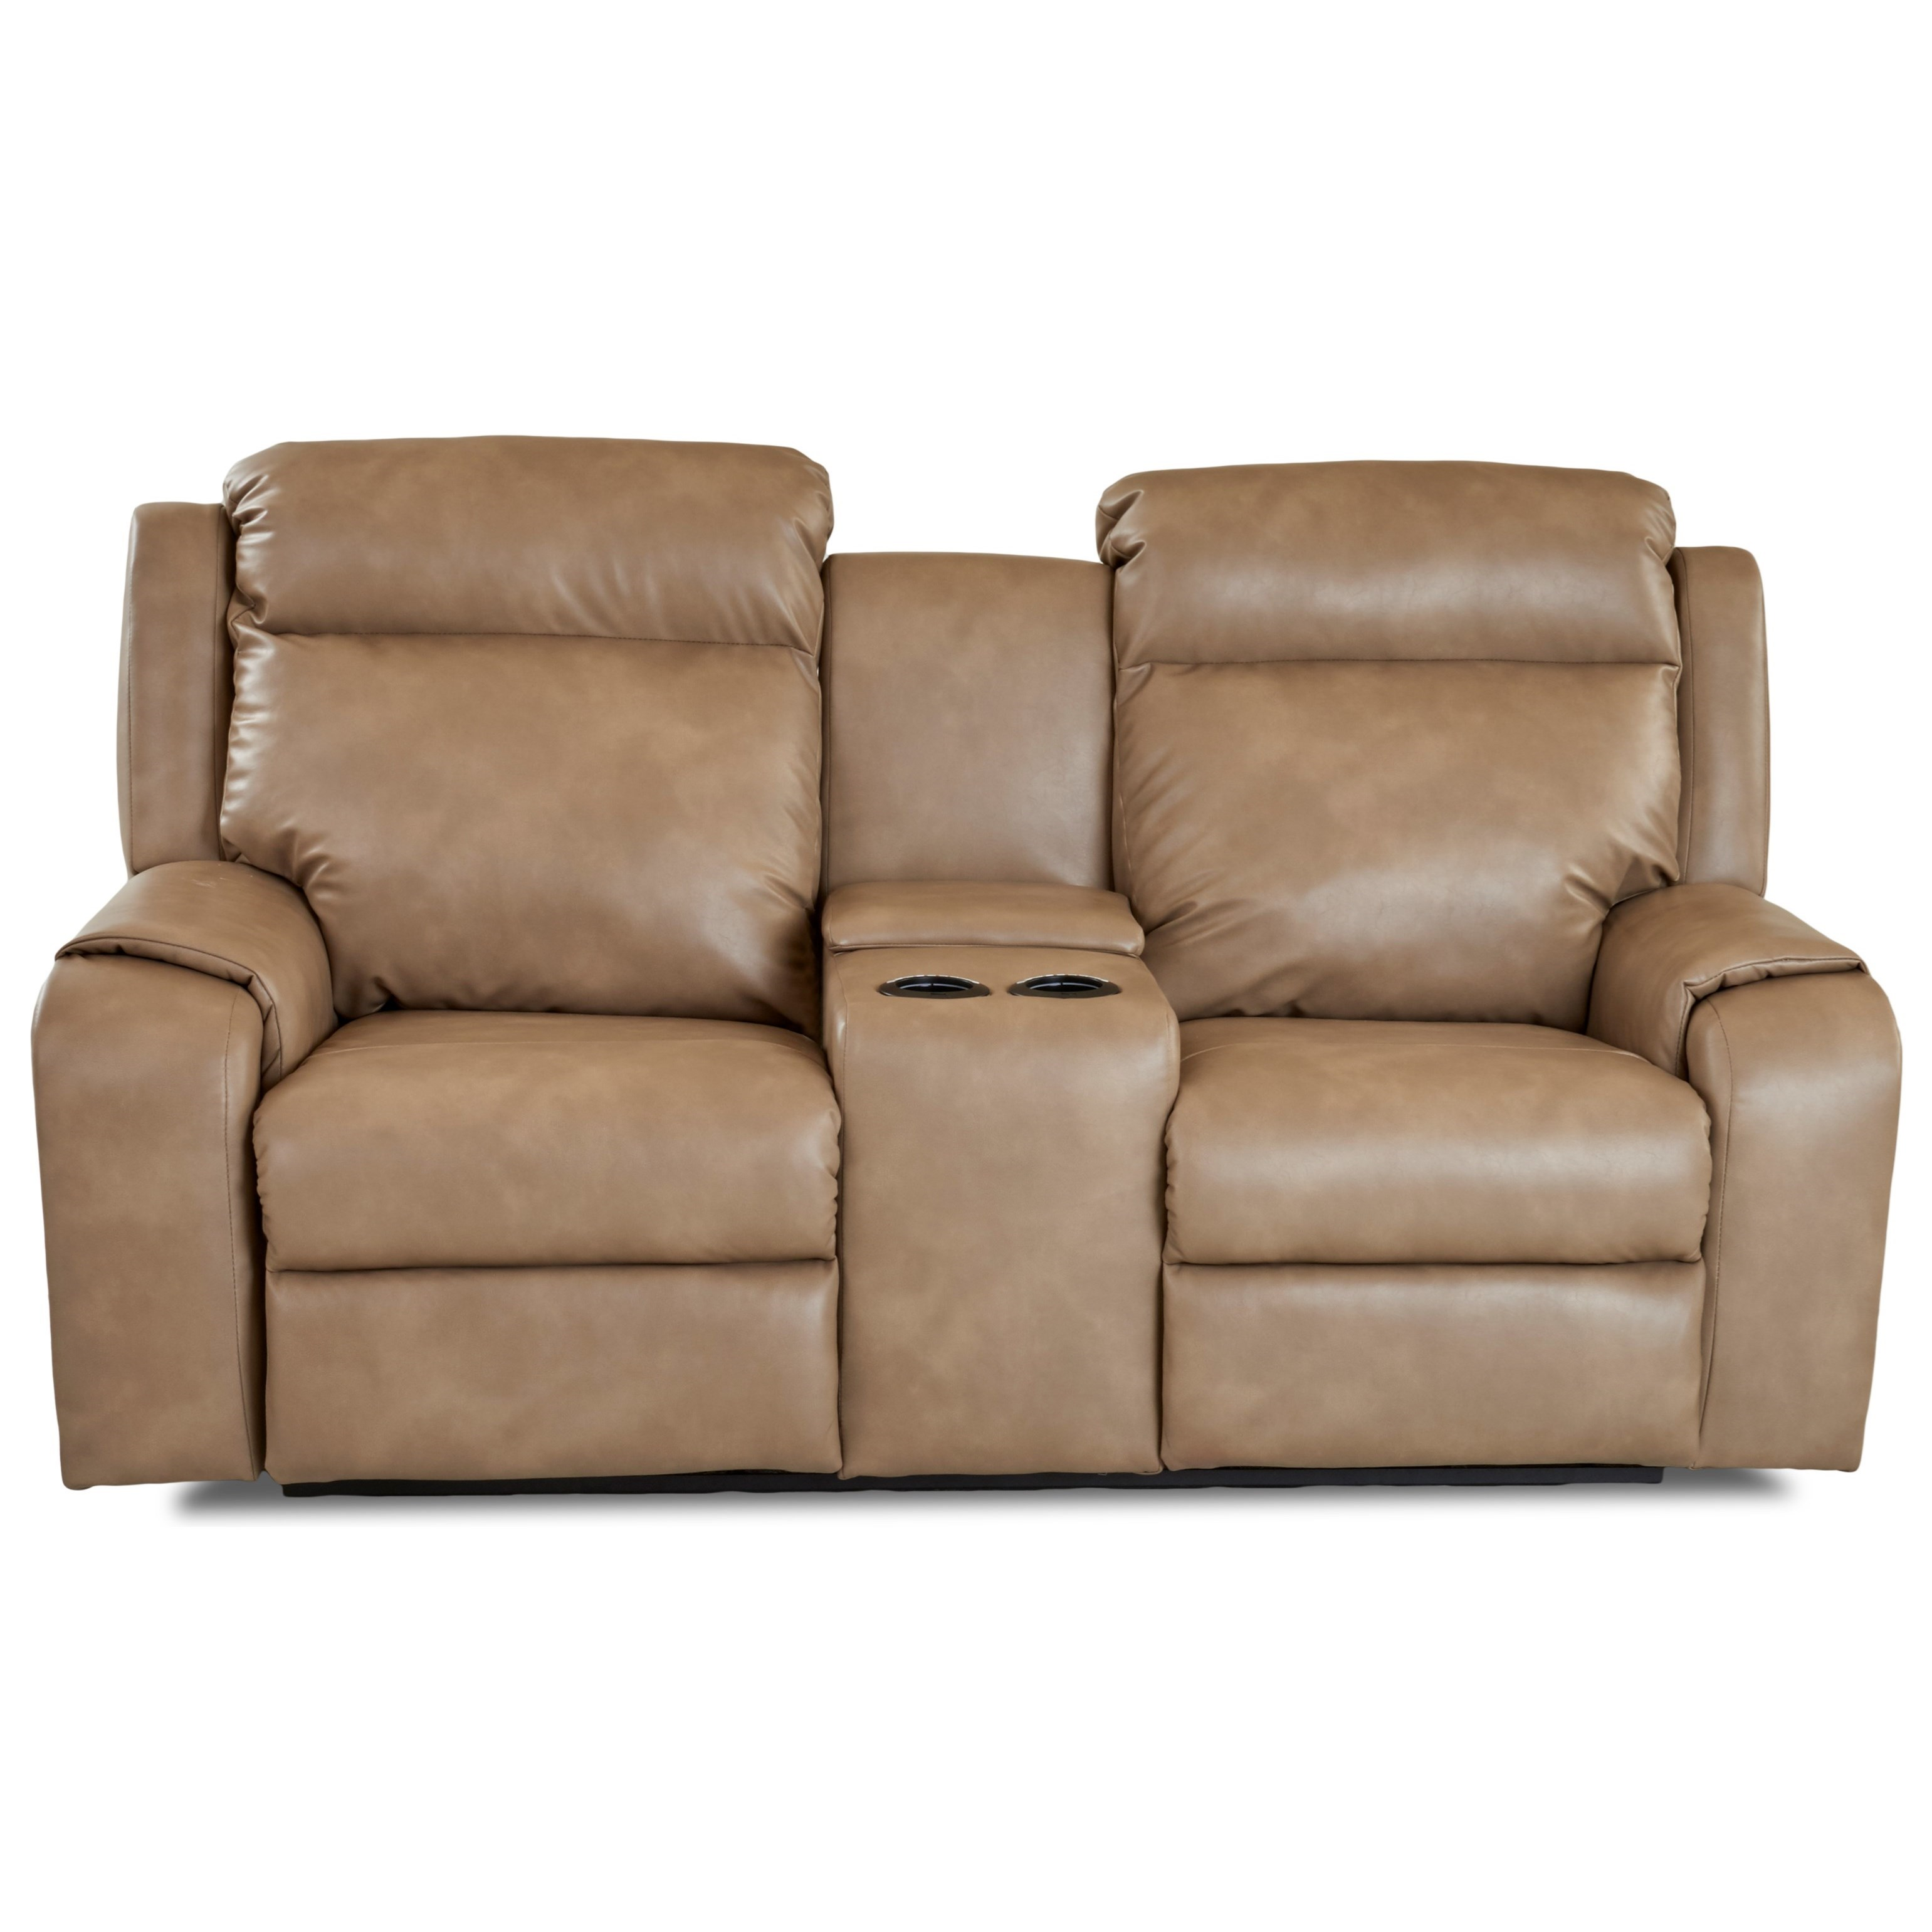 Power Reclining Console Loveseat with Power Headrests / Lumbar and USB Charging Ports